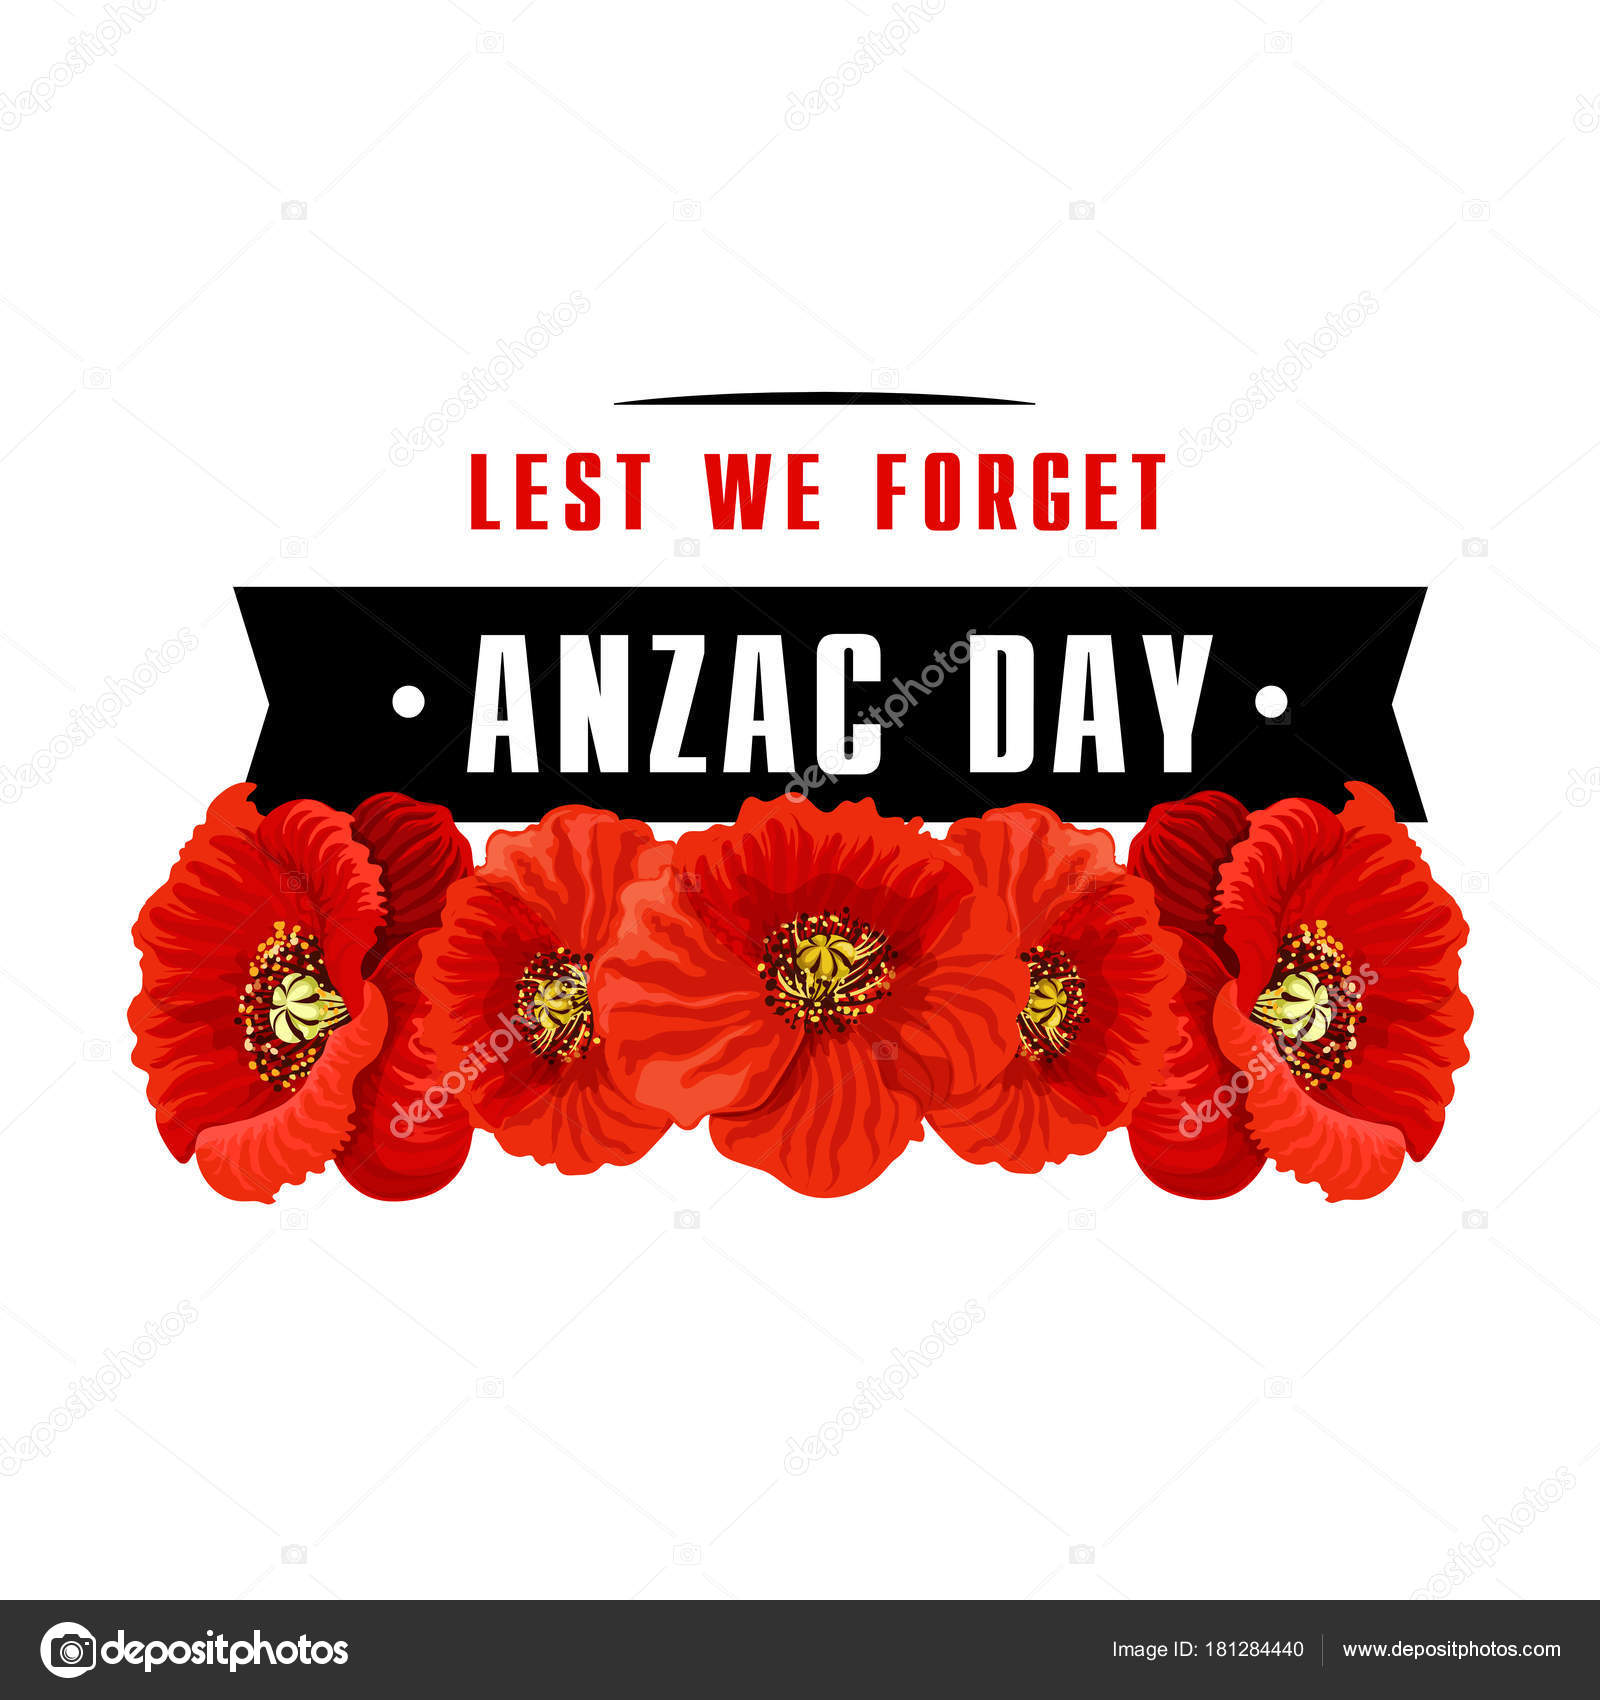 Anzac poppy flower icon with lest we forget banner stock vector anzac day poppy icon with lest we forget banner red poppy flower with black ribbon memorial card for australian and new zealand army corps remembrance day mightylinksfo Gallery